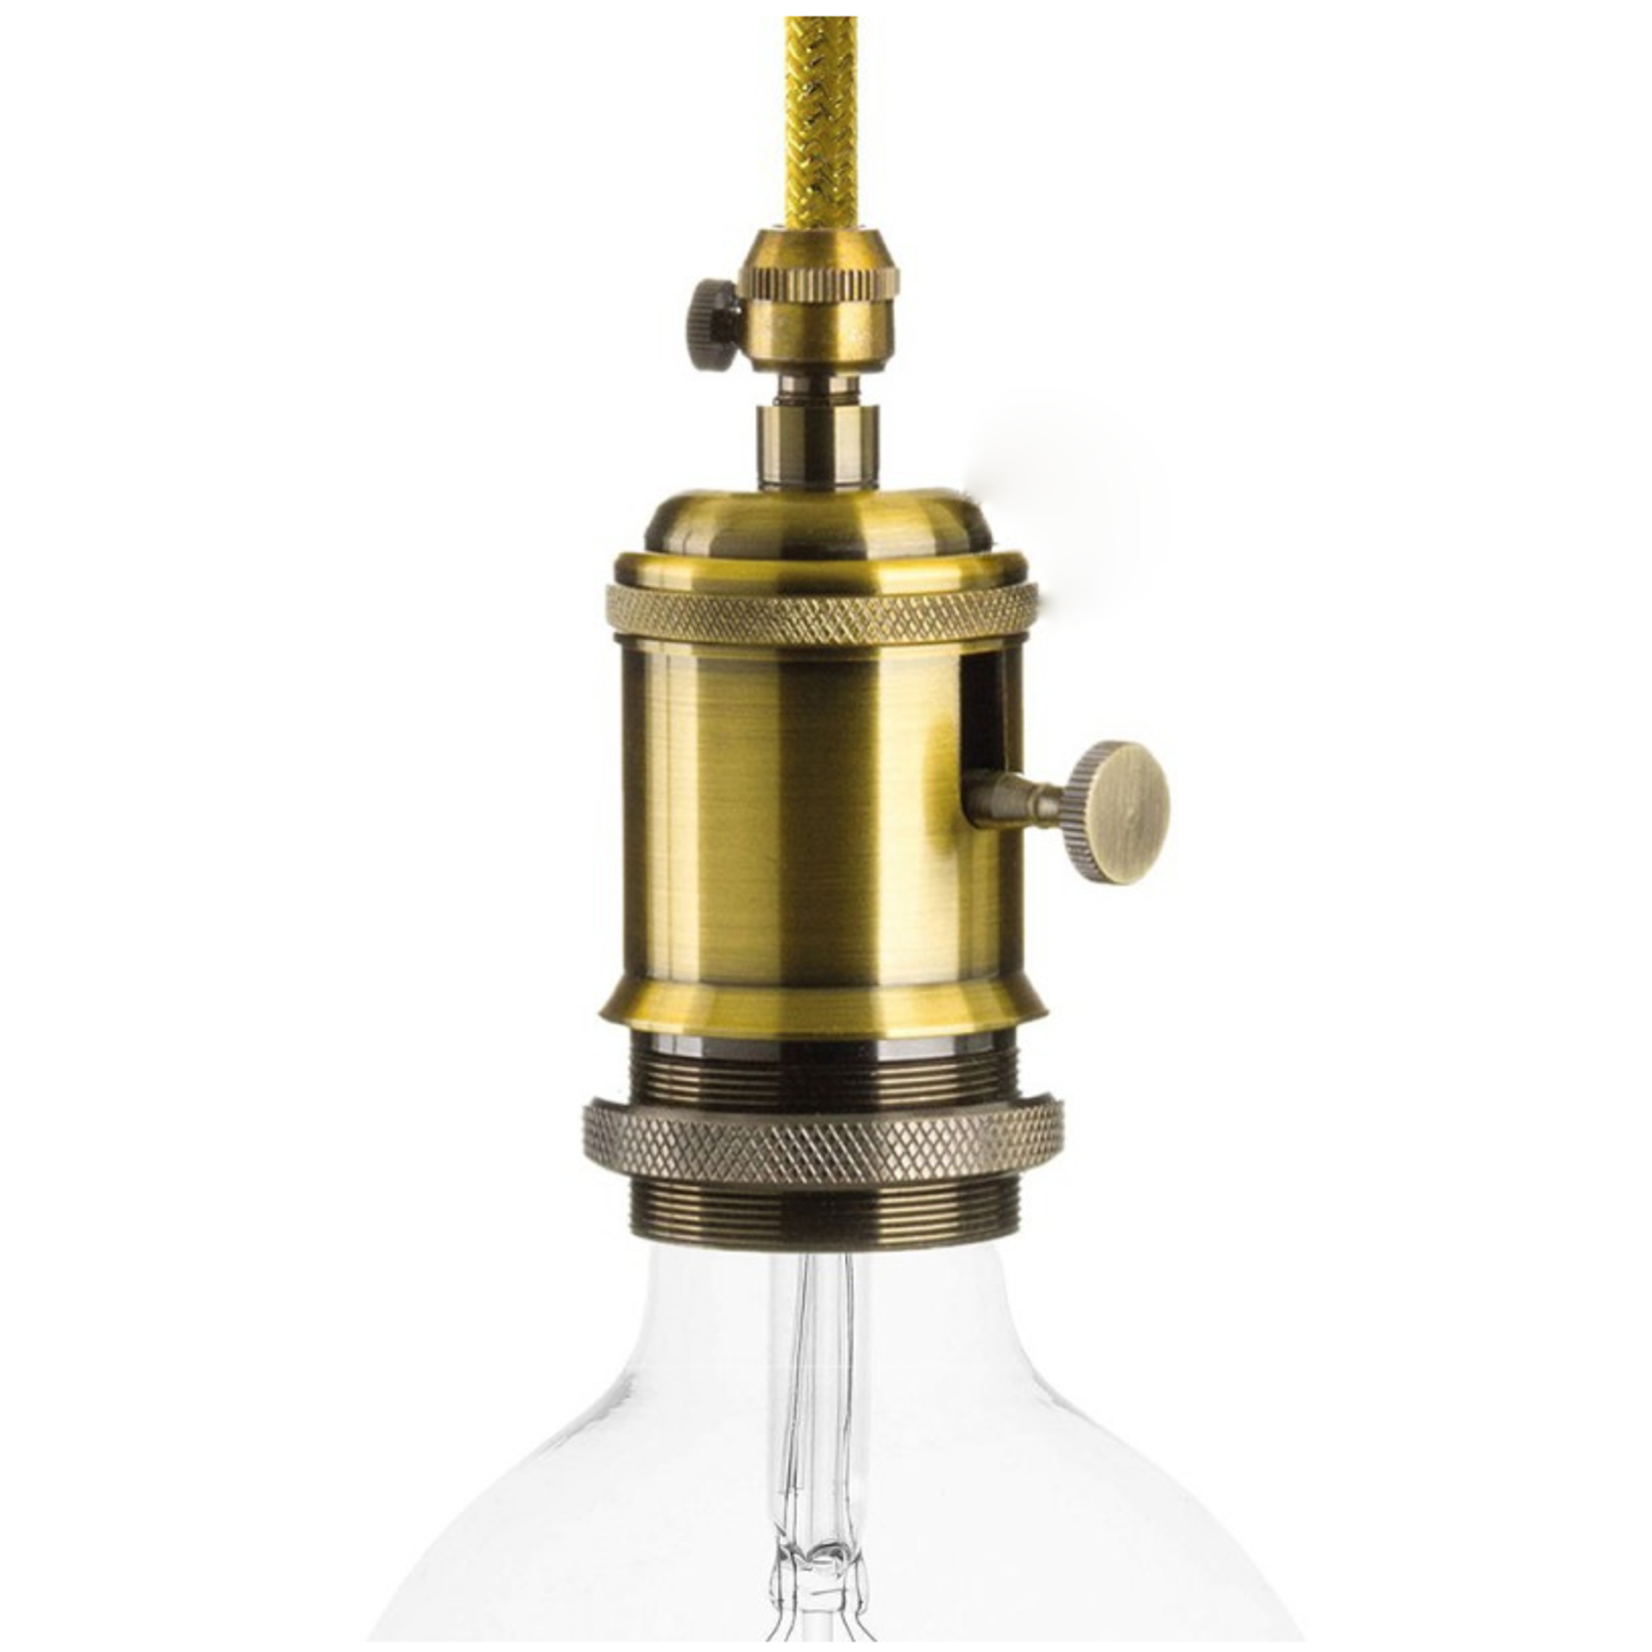 CCIT Brass Lampholder with dial switch and cable Grip E27